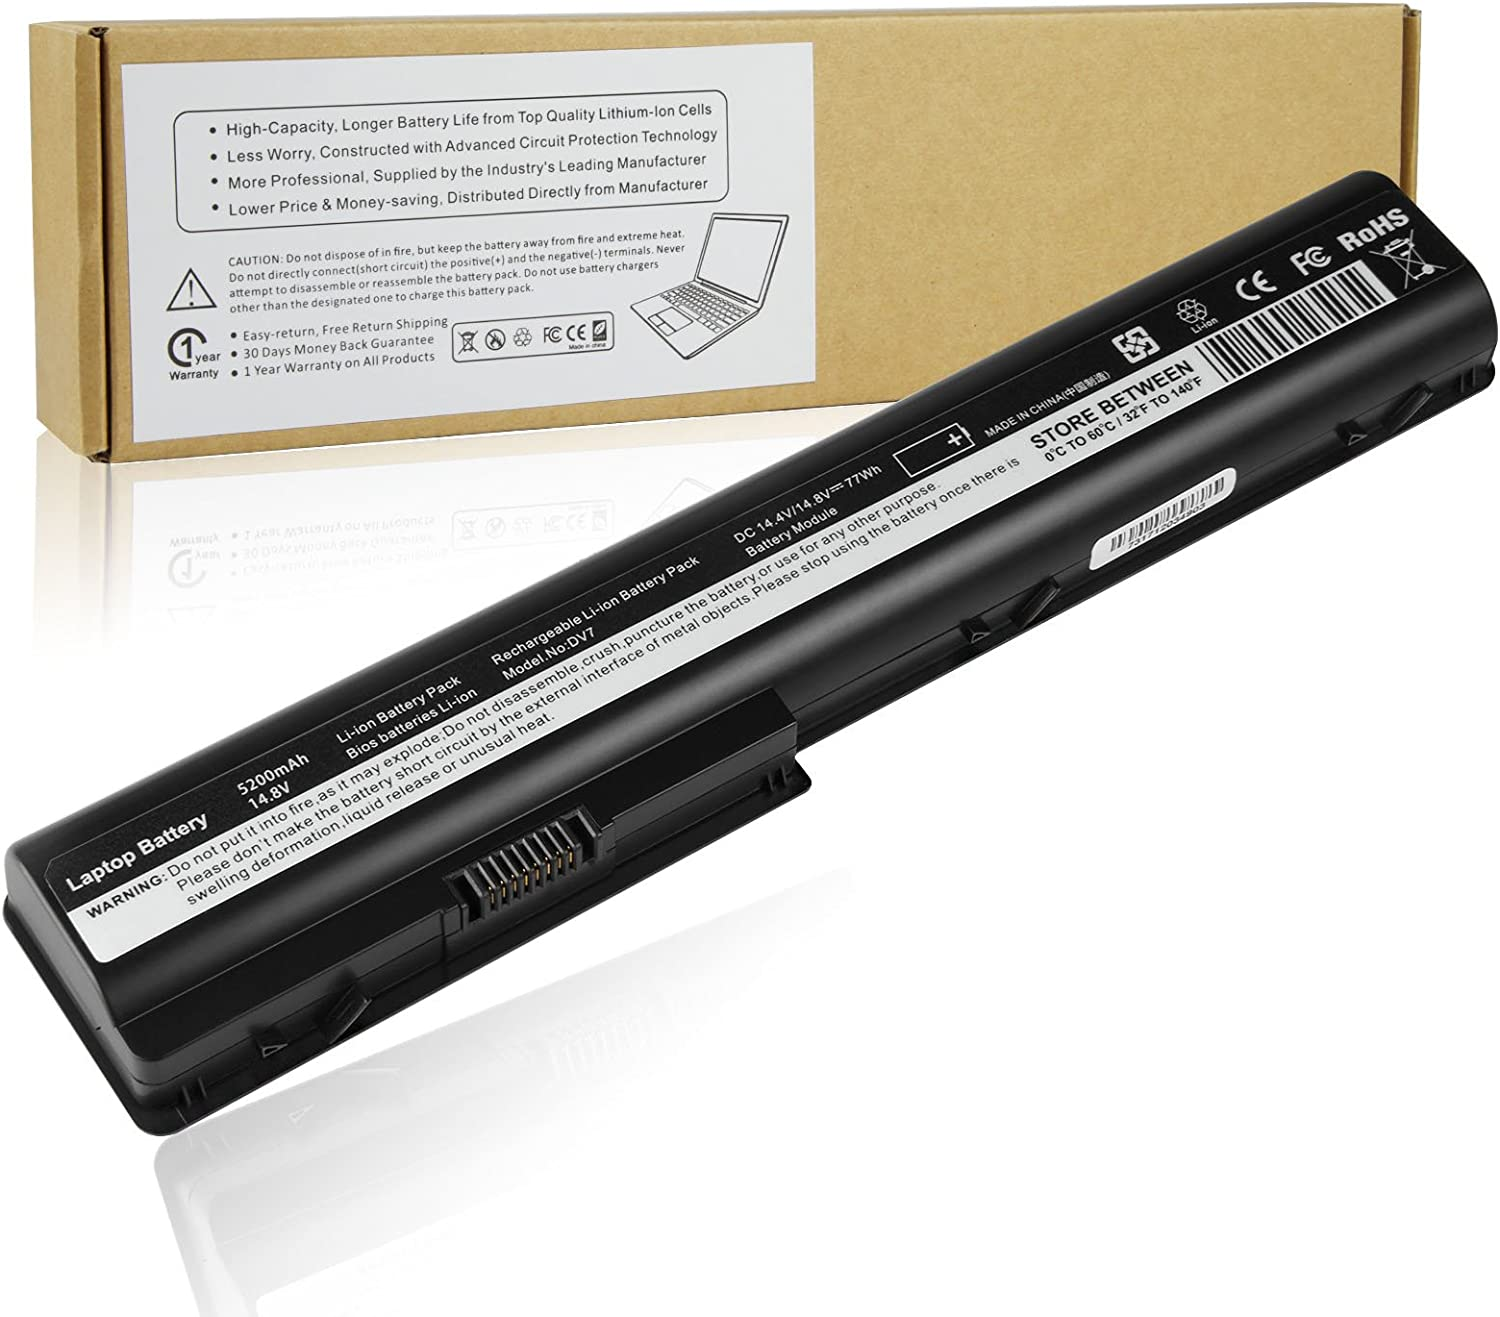 Futurebatt 8Cell Laptop Battery for HP Pavilion dv7 dv7t dv7t-1000 dv7z dv7z-1000 dv7-3150sg dv7-3152ca dv7-3153ca dv7-3155eb etc, DV8 DV8t HDX18t 464059-141 480385-001 Notebook